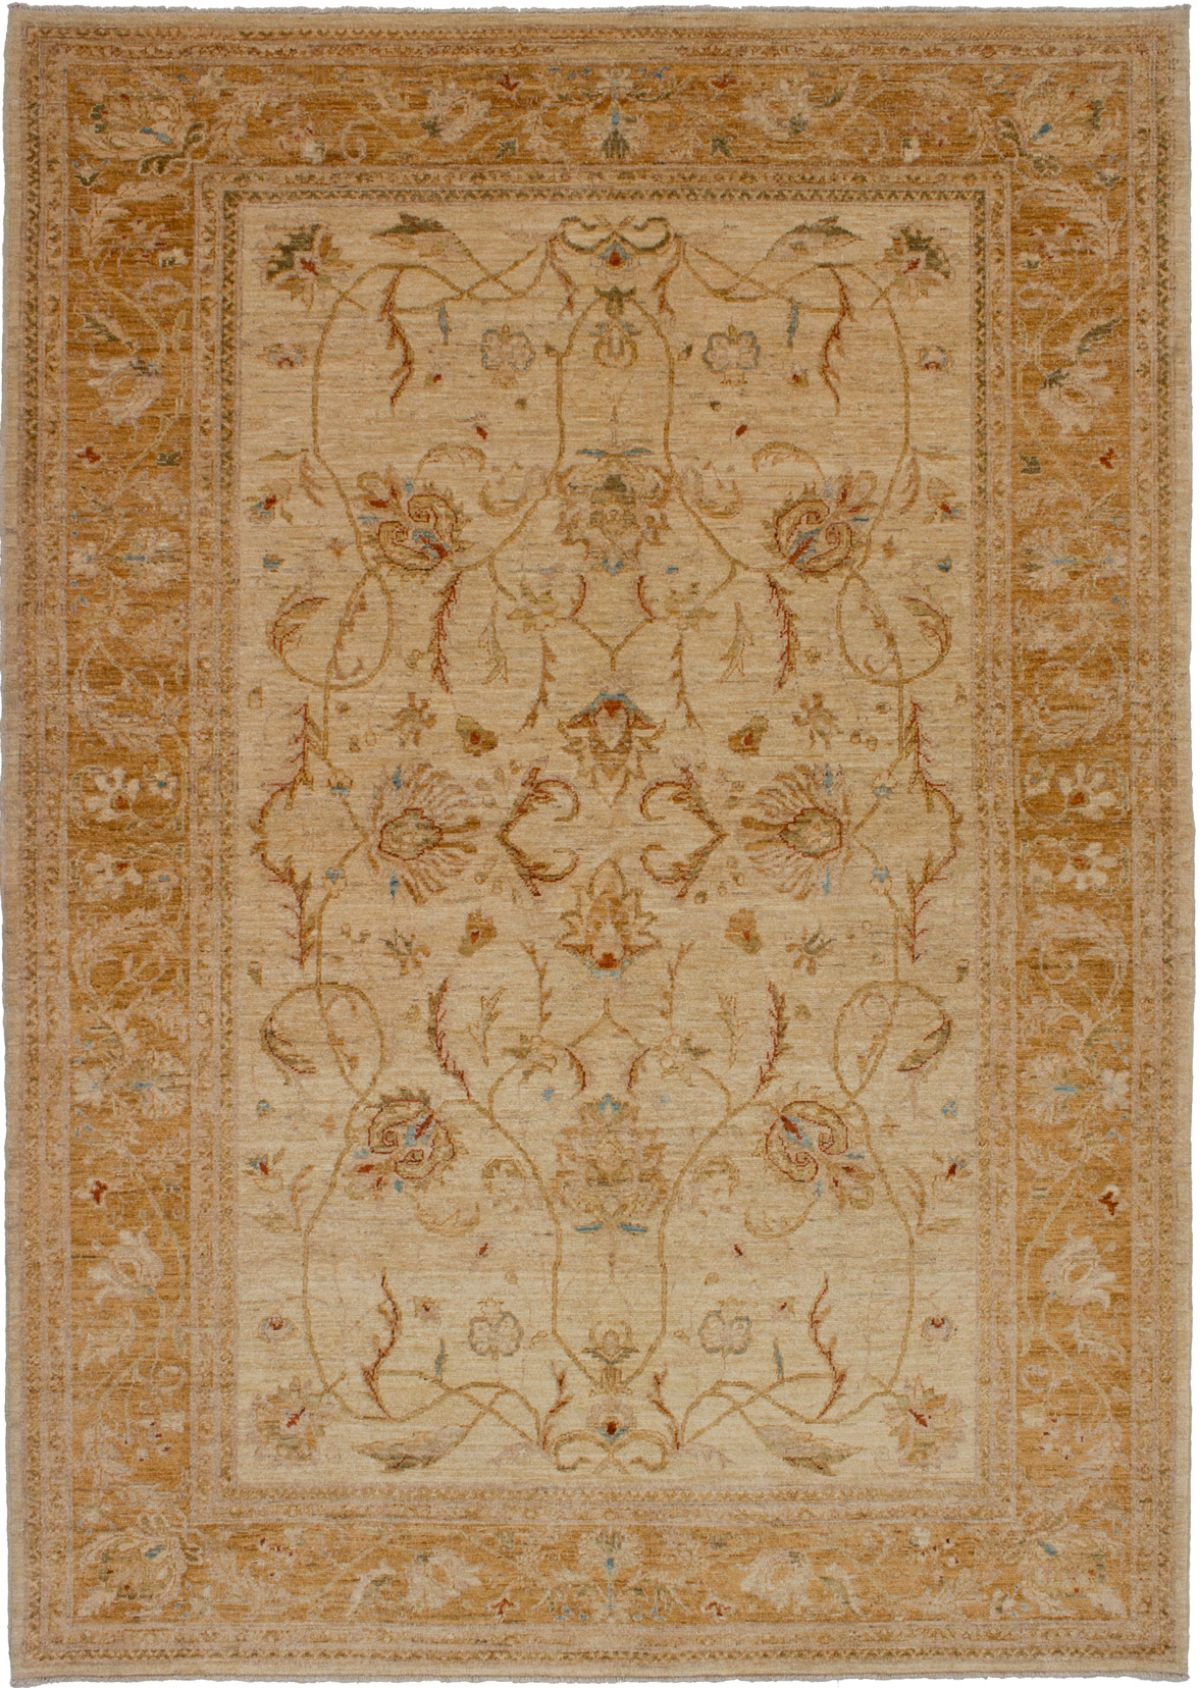 Hand-knotted Chobi Finest Cream Wool Rug 6'4in x 8'10in at RugsBySize.com